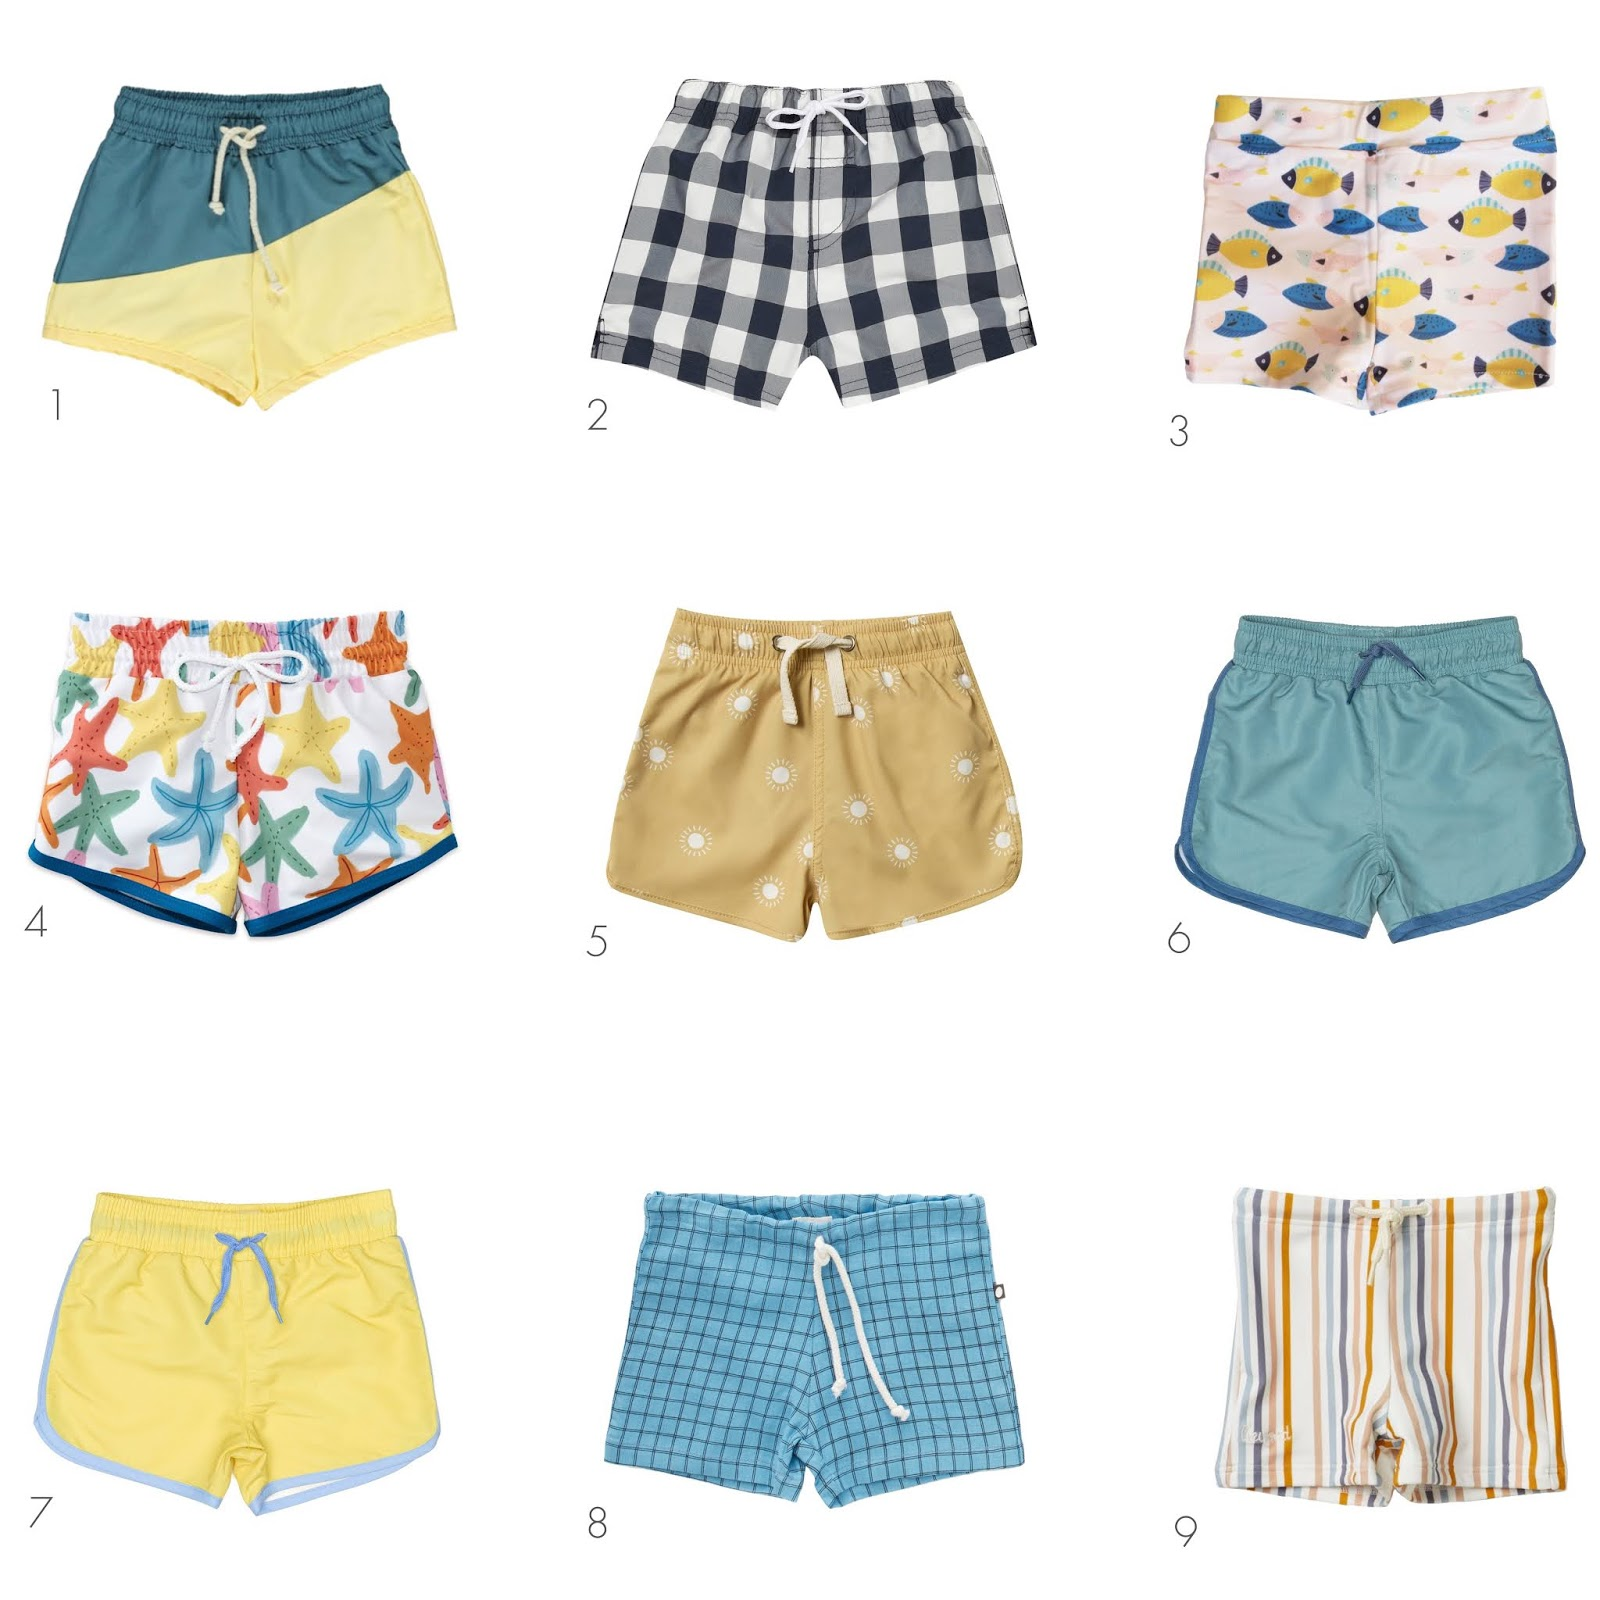 a round-up of nine swim shorts for baby boys